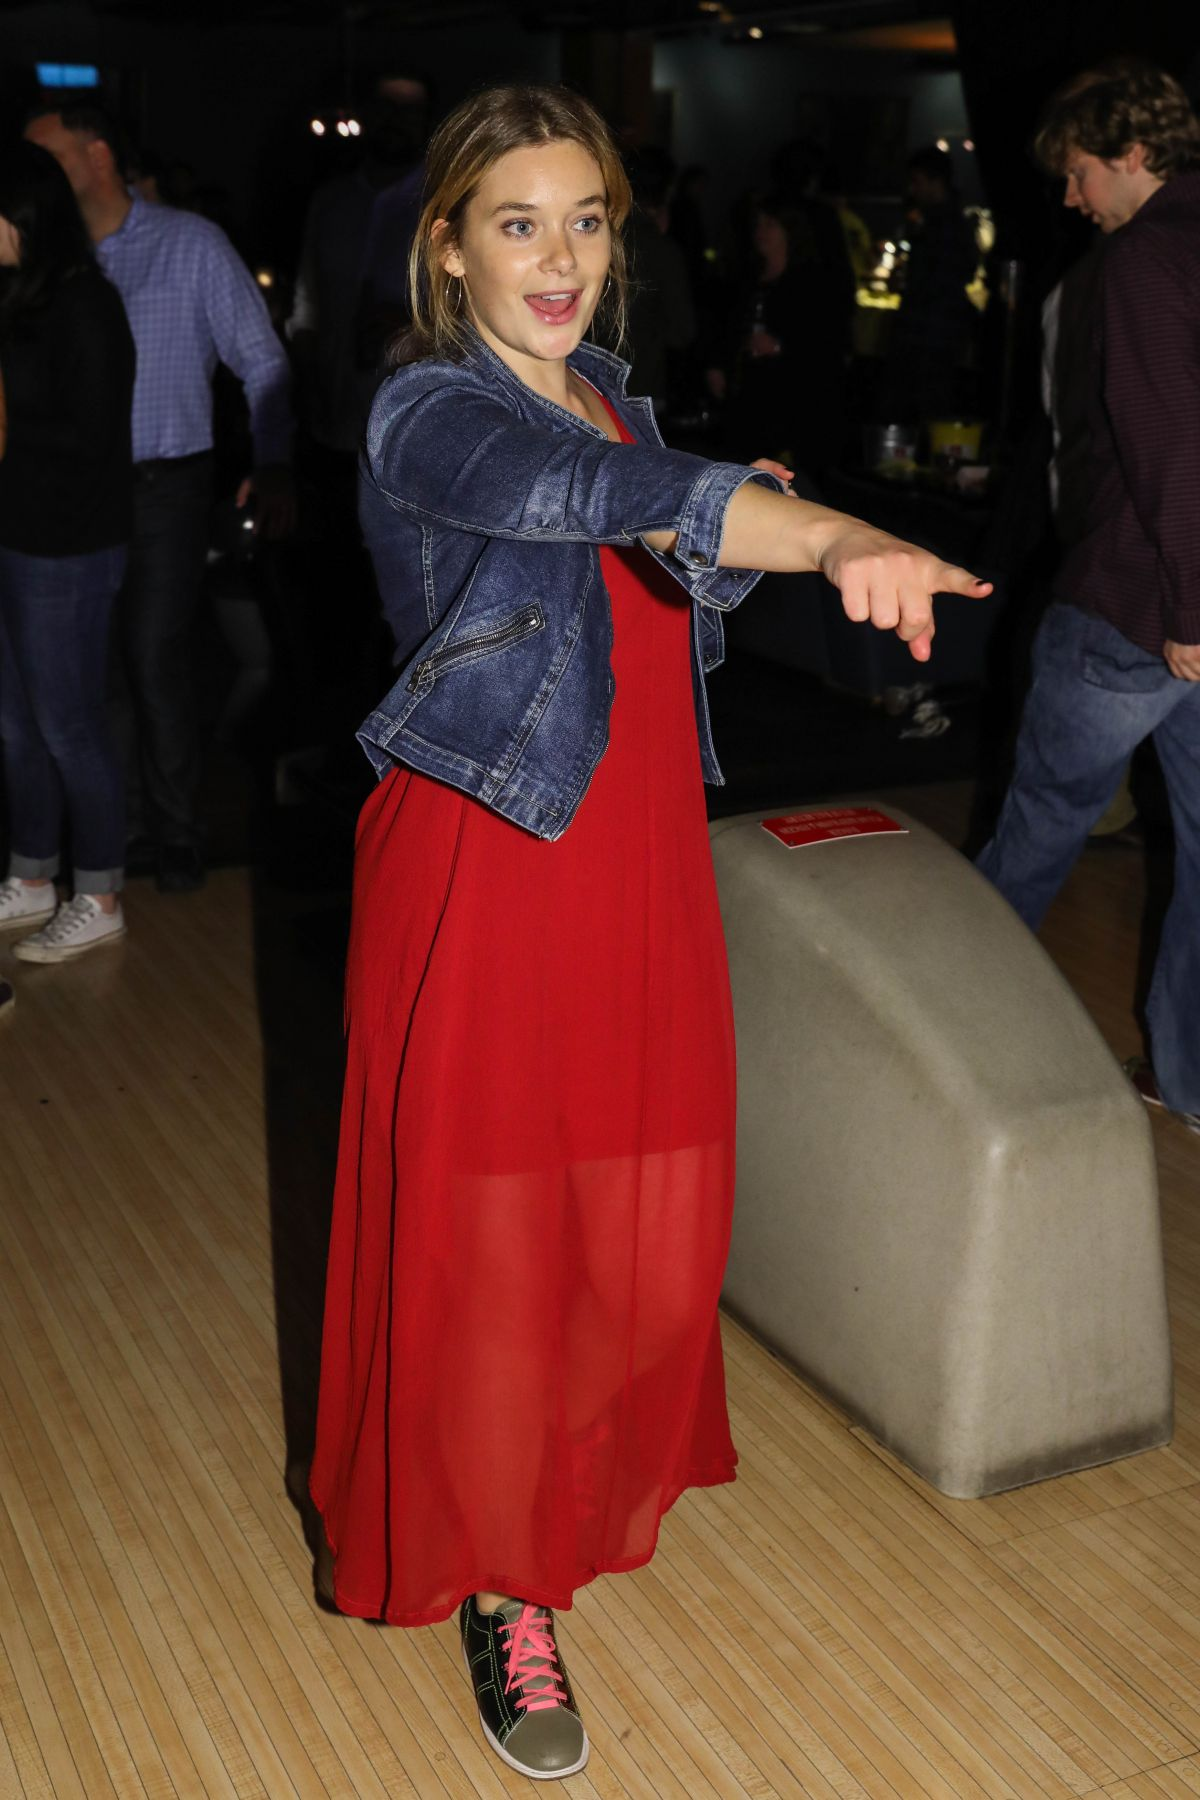 RACHEL KELLER at 8th Annual FX All-Star Bowling Party in New York 04/06/2017